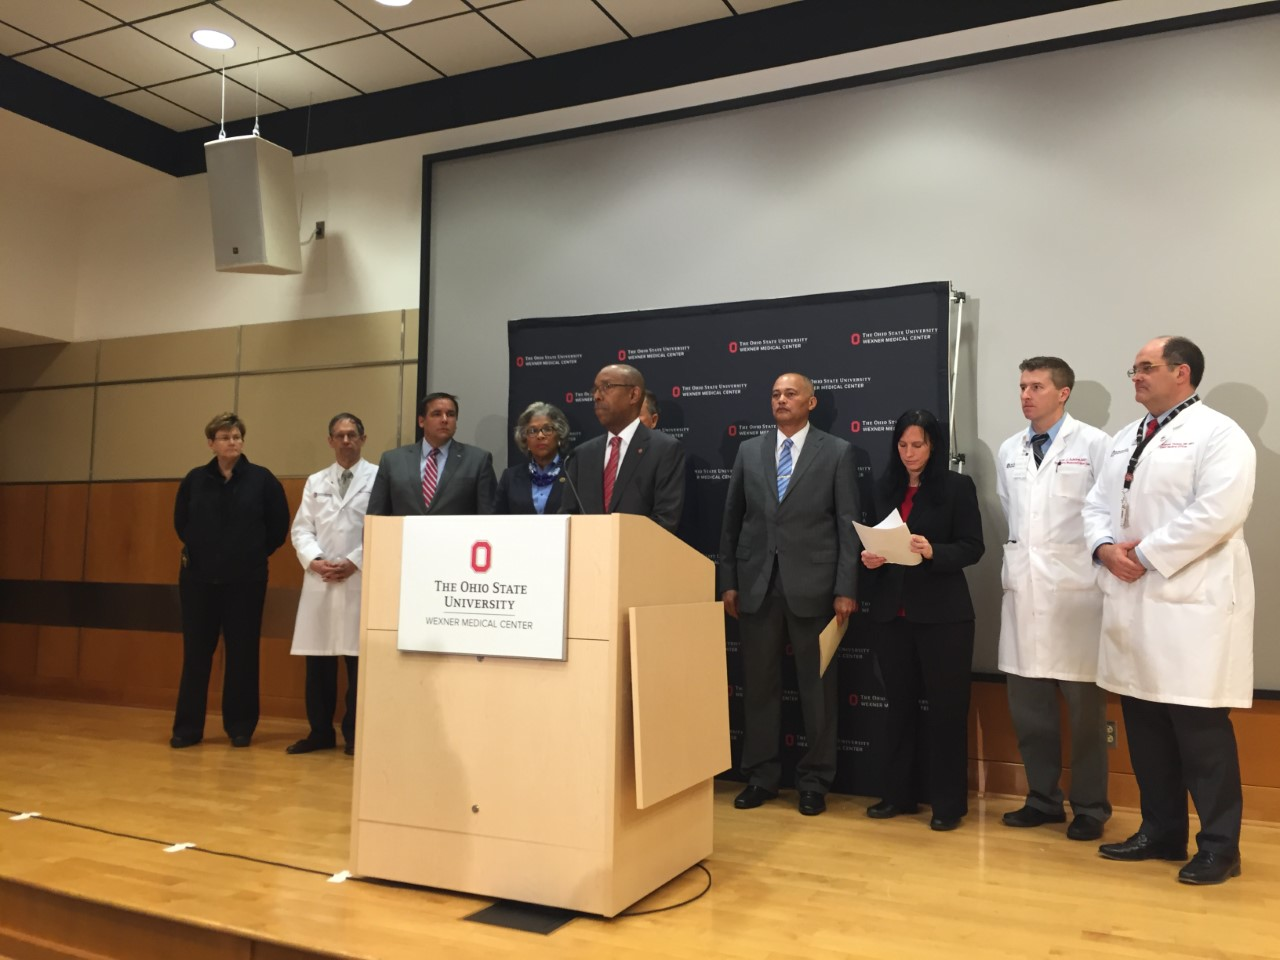 Ohio State President Dr. Michael Drake at a press conference at OSU Wexner Medical Center regarding the campus attack Monday morning (WSYX/WTTE)